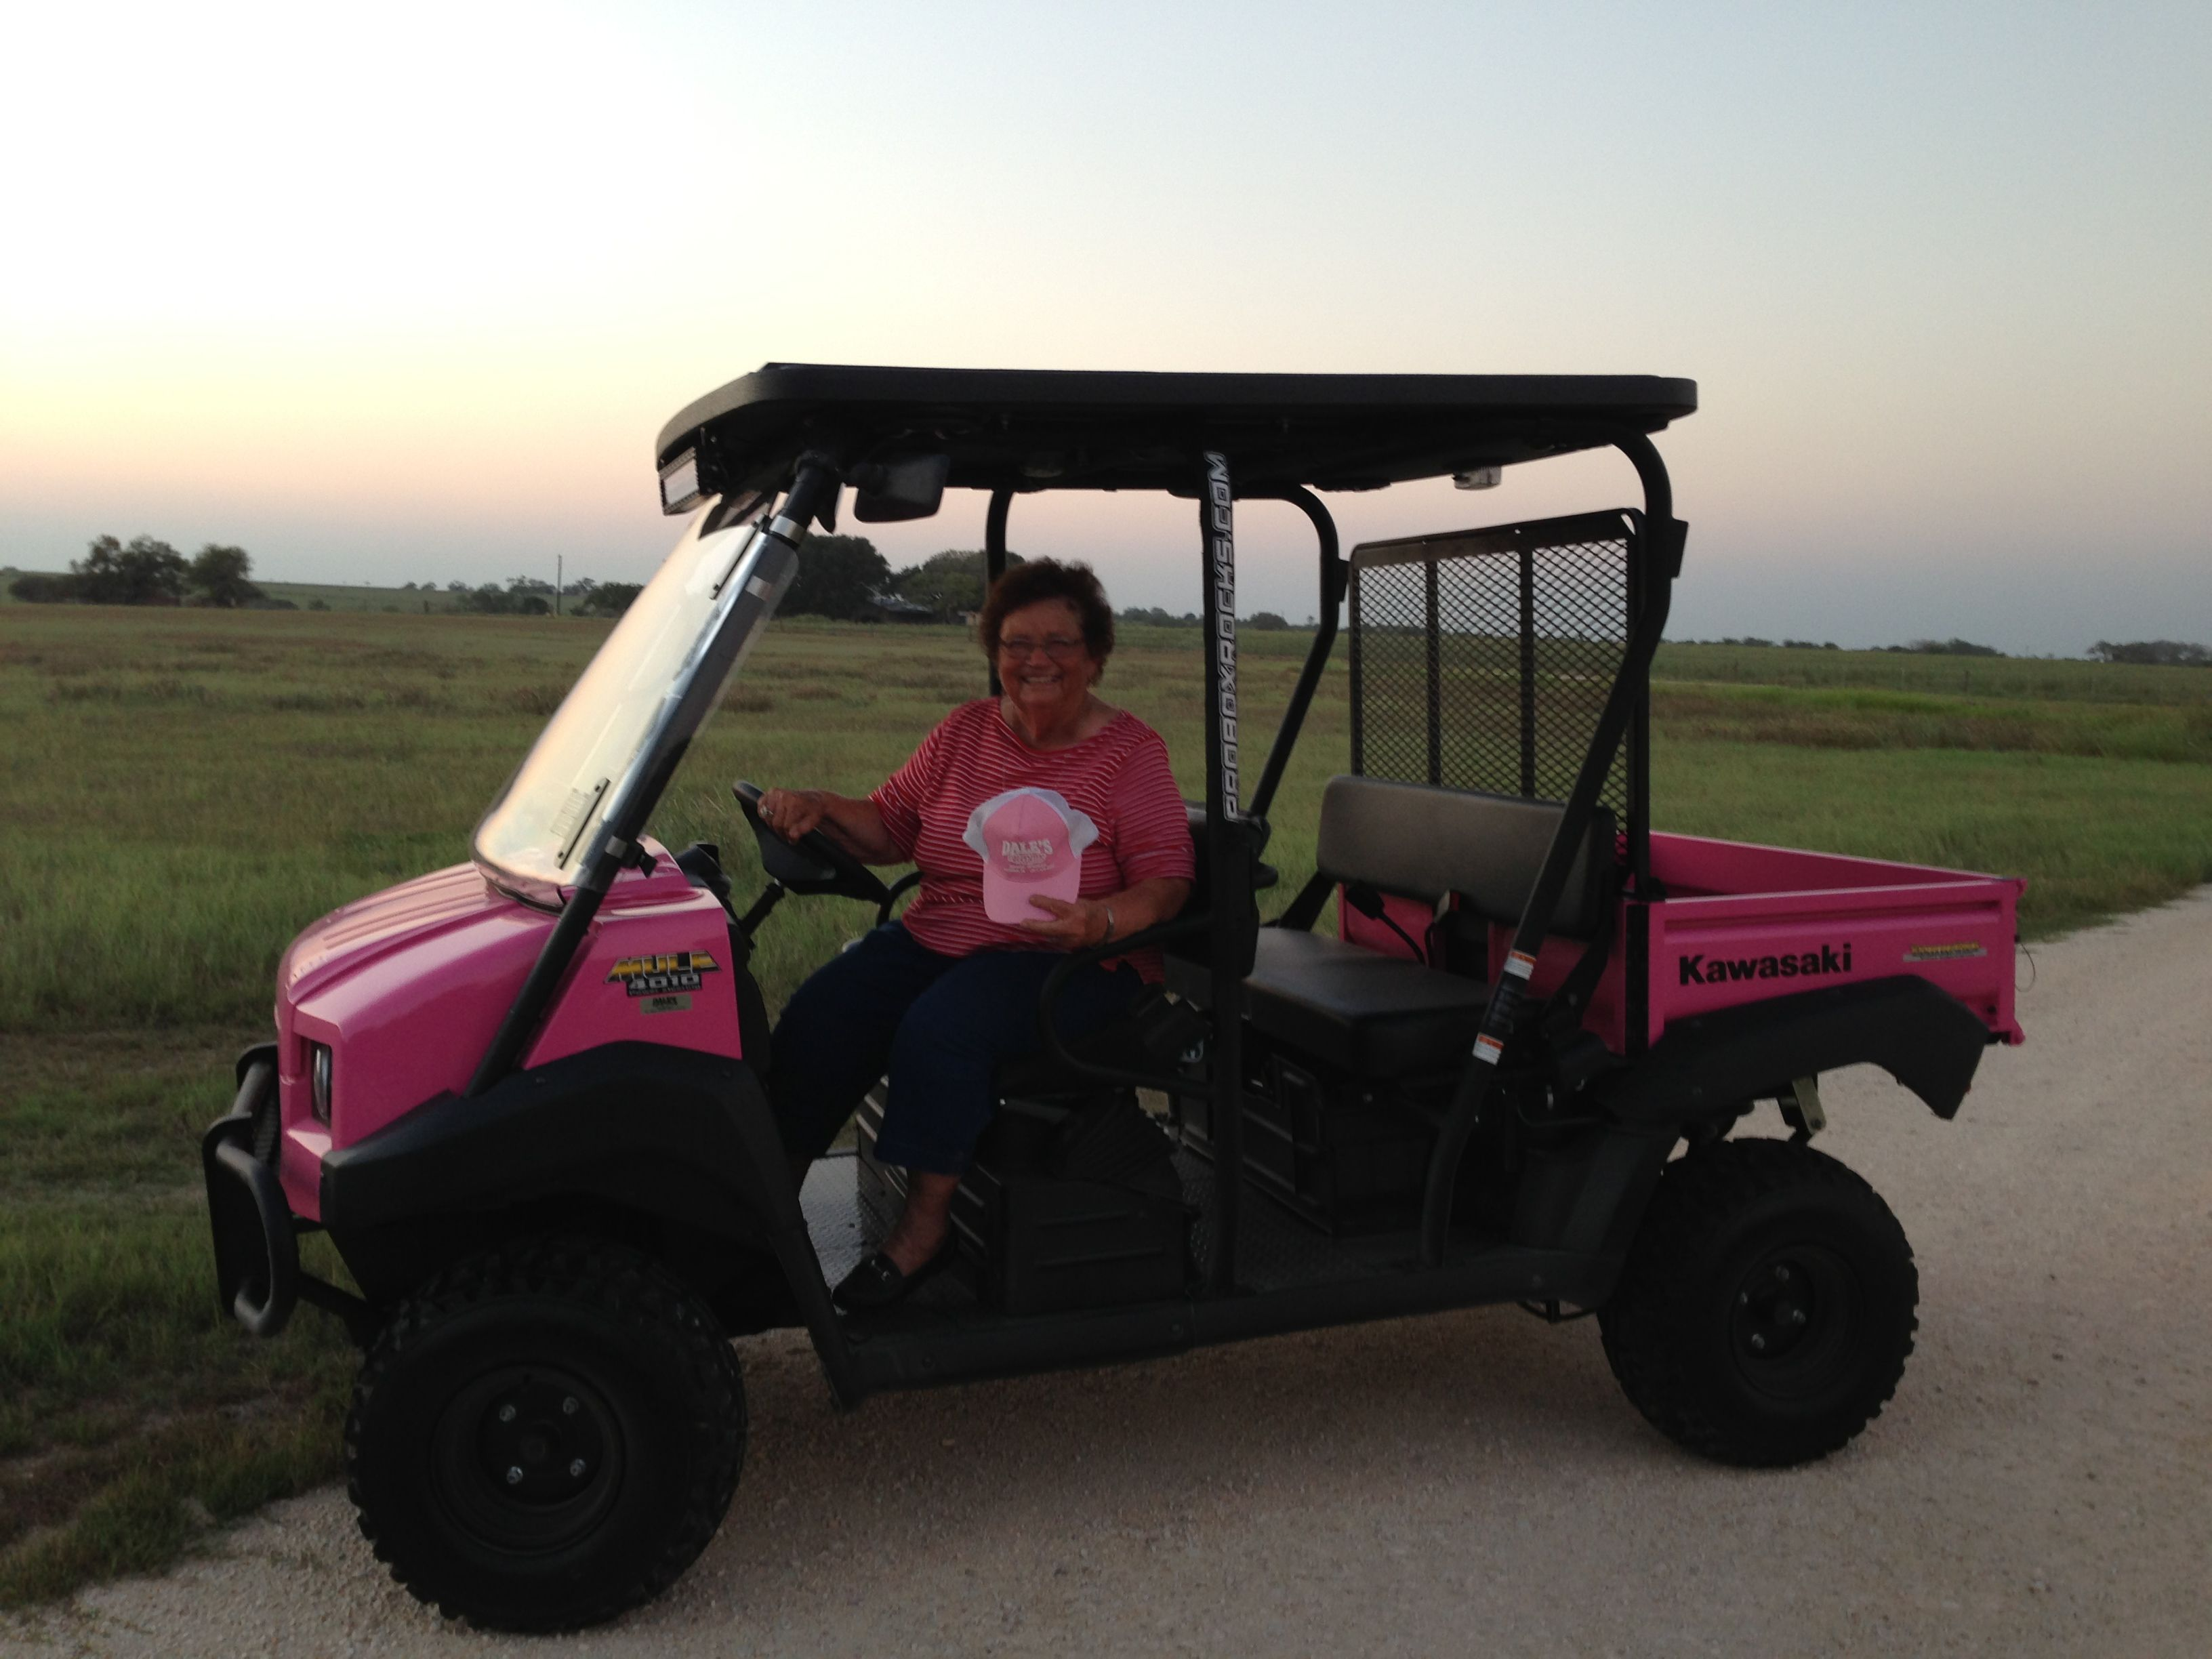 Custom Paint On A Kawasaki 4010 Mule In Hot Pink Kawasaki Mules